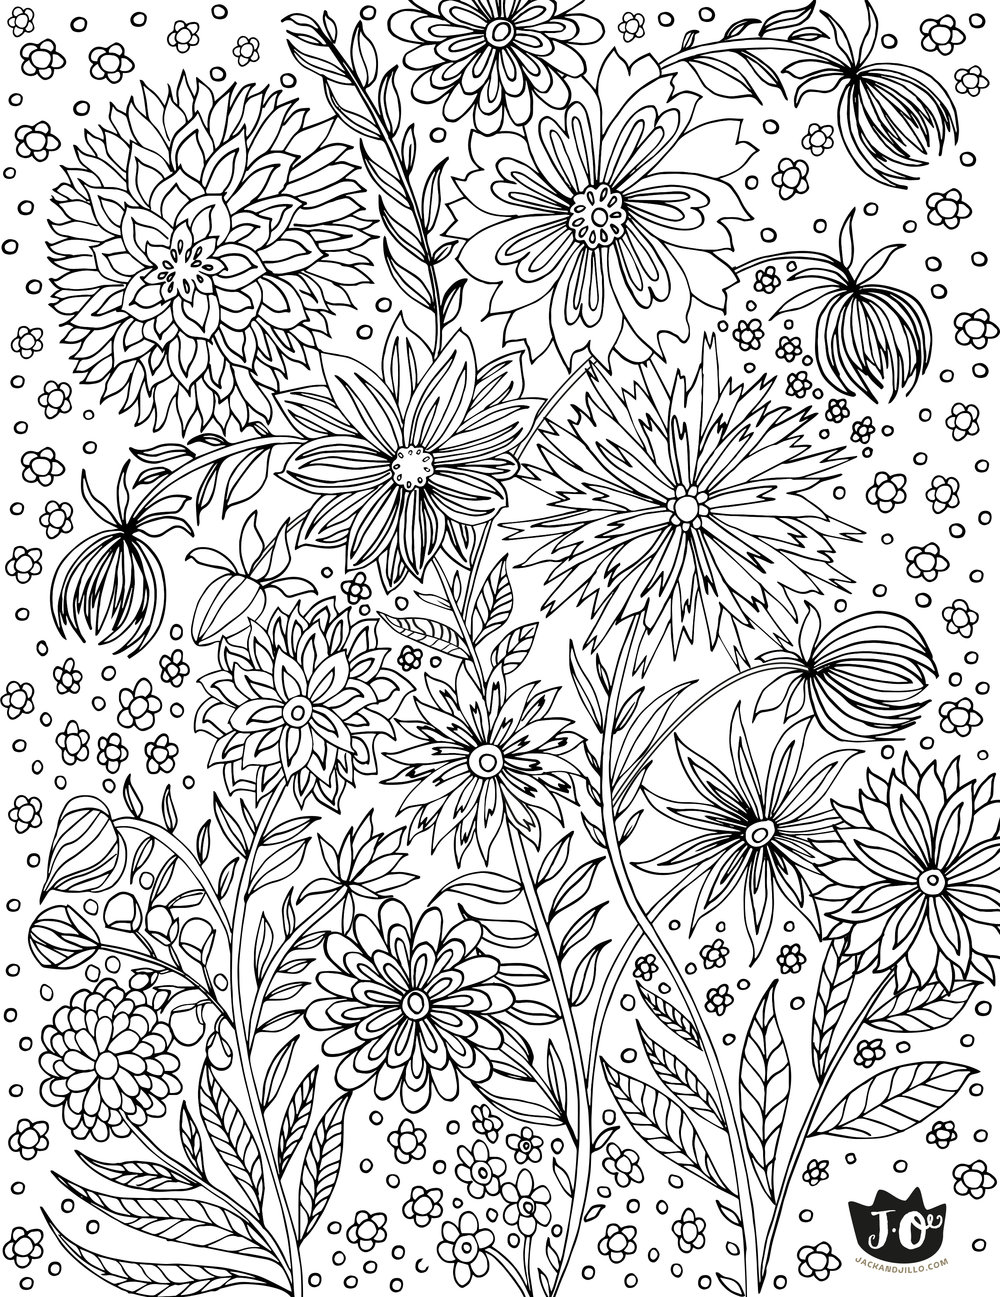 Click to print your free coloring page!